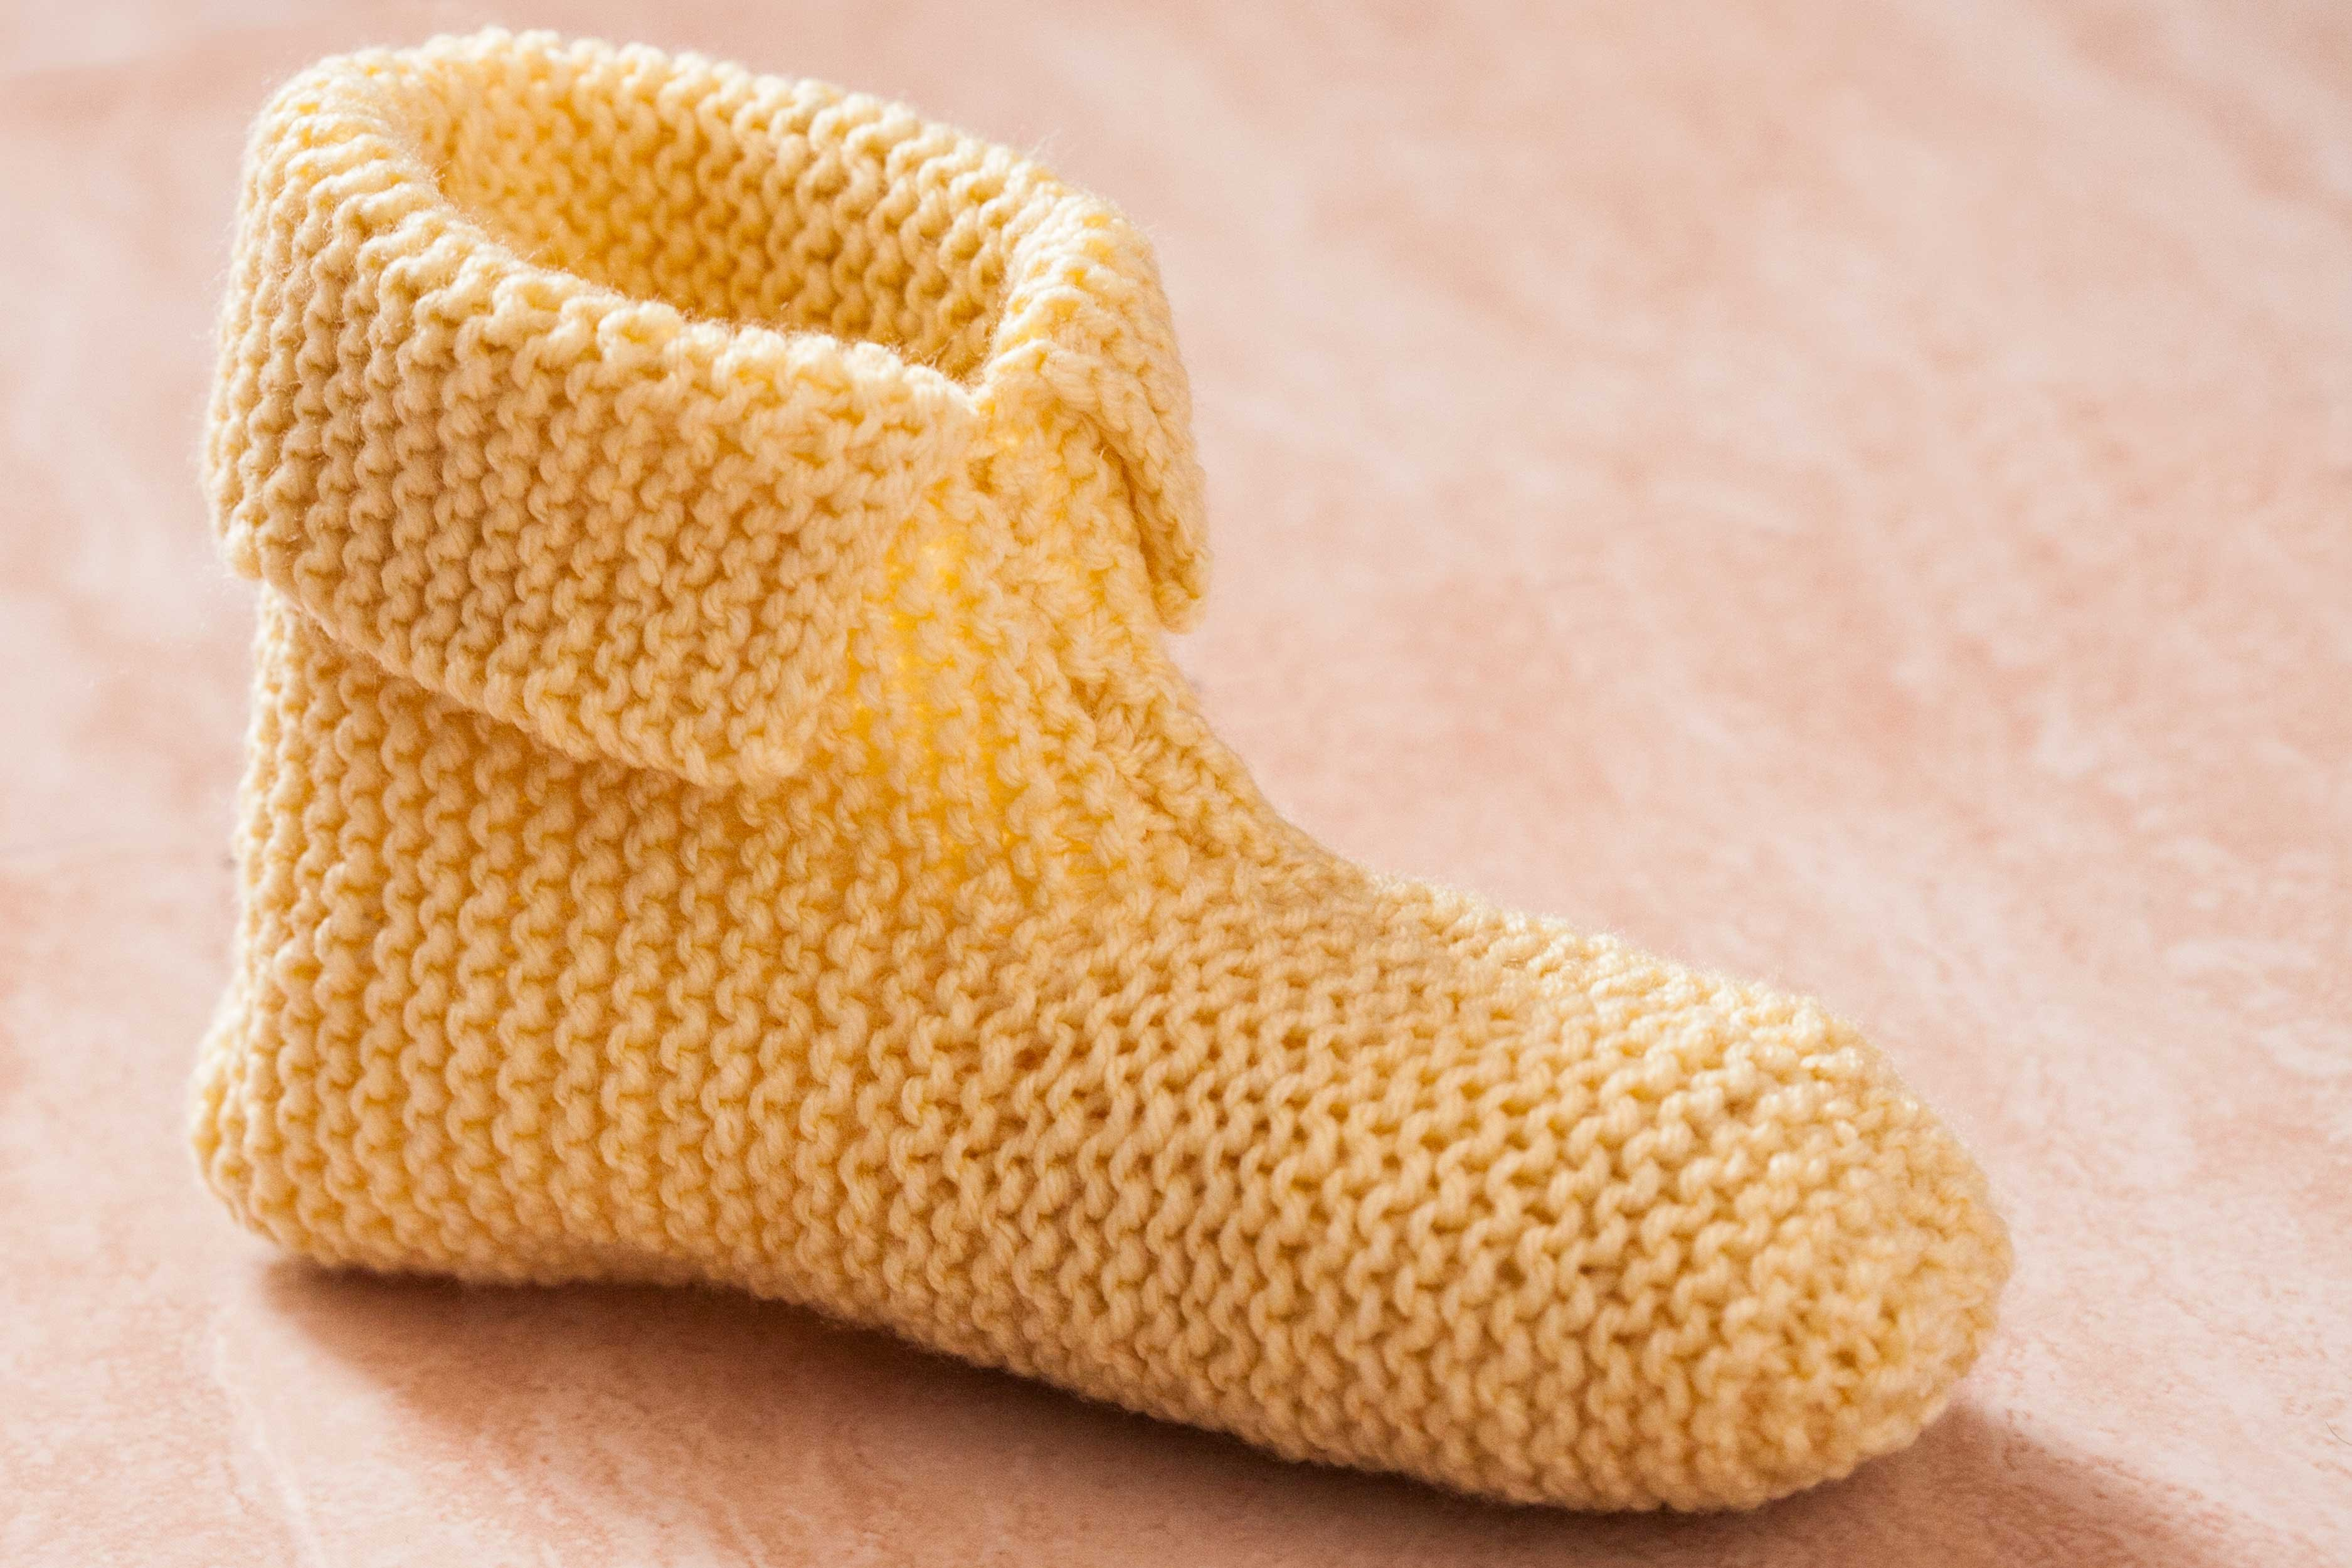 Knitting Slippers Patterns For Beginners : How to knit slippers for beginners with pictures ehow